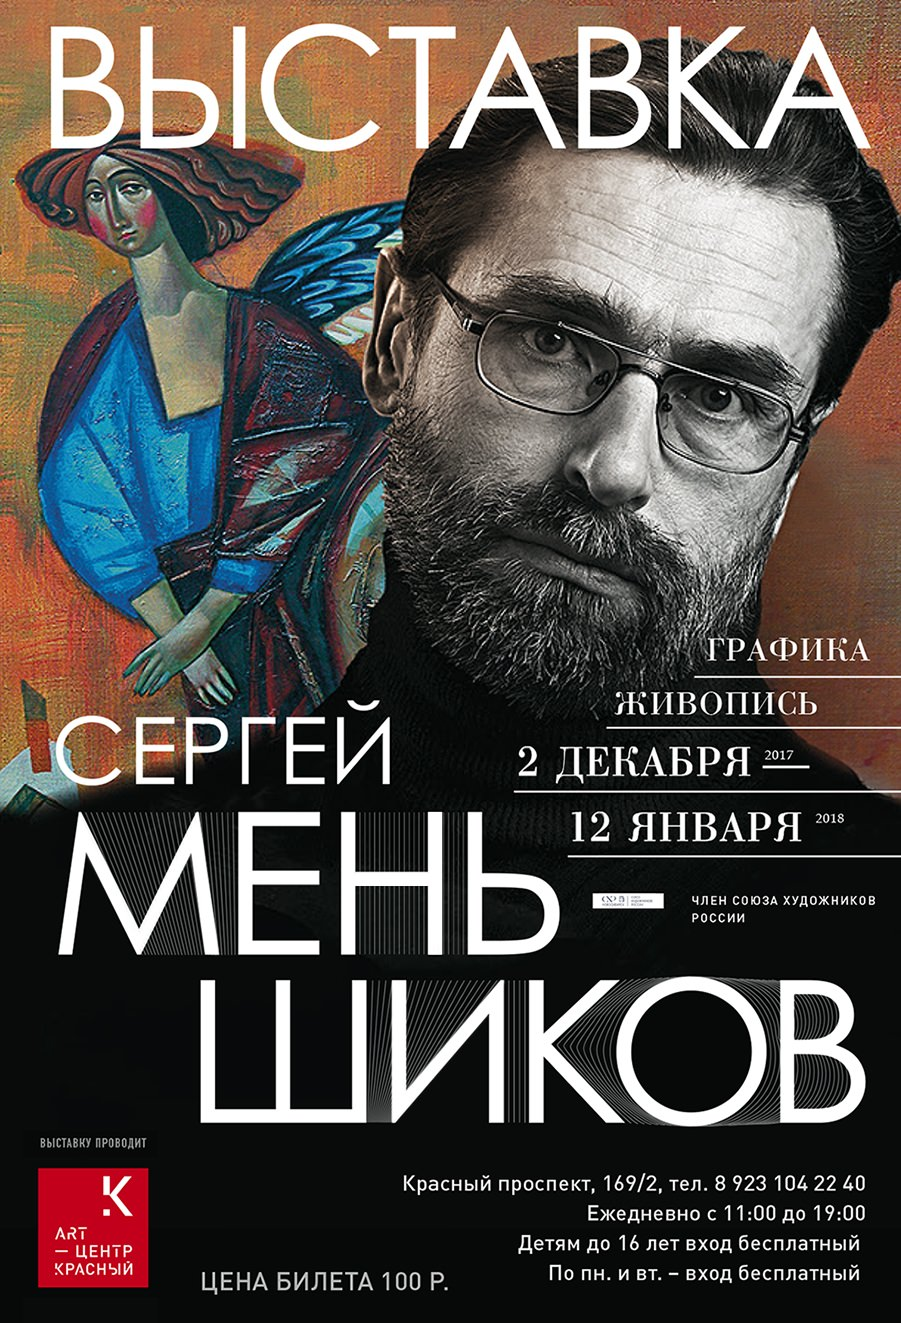 Exhibition by Sergei Menshikov, dedicated to the 60th anniversary of the author